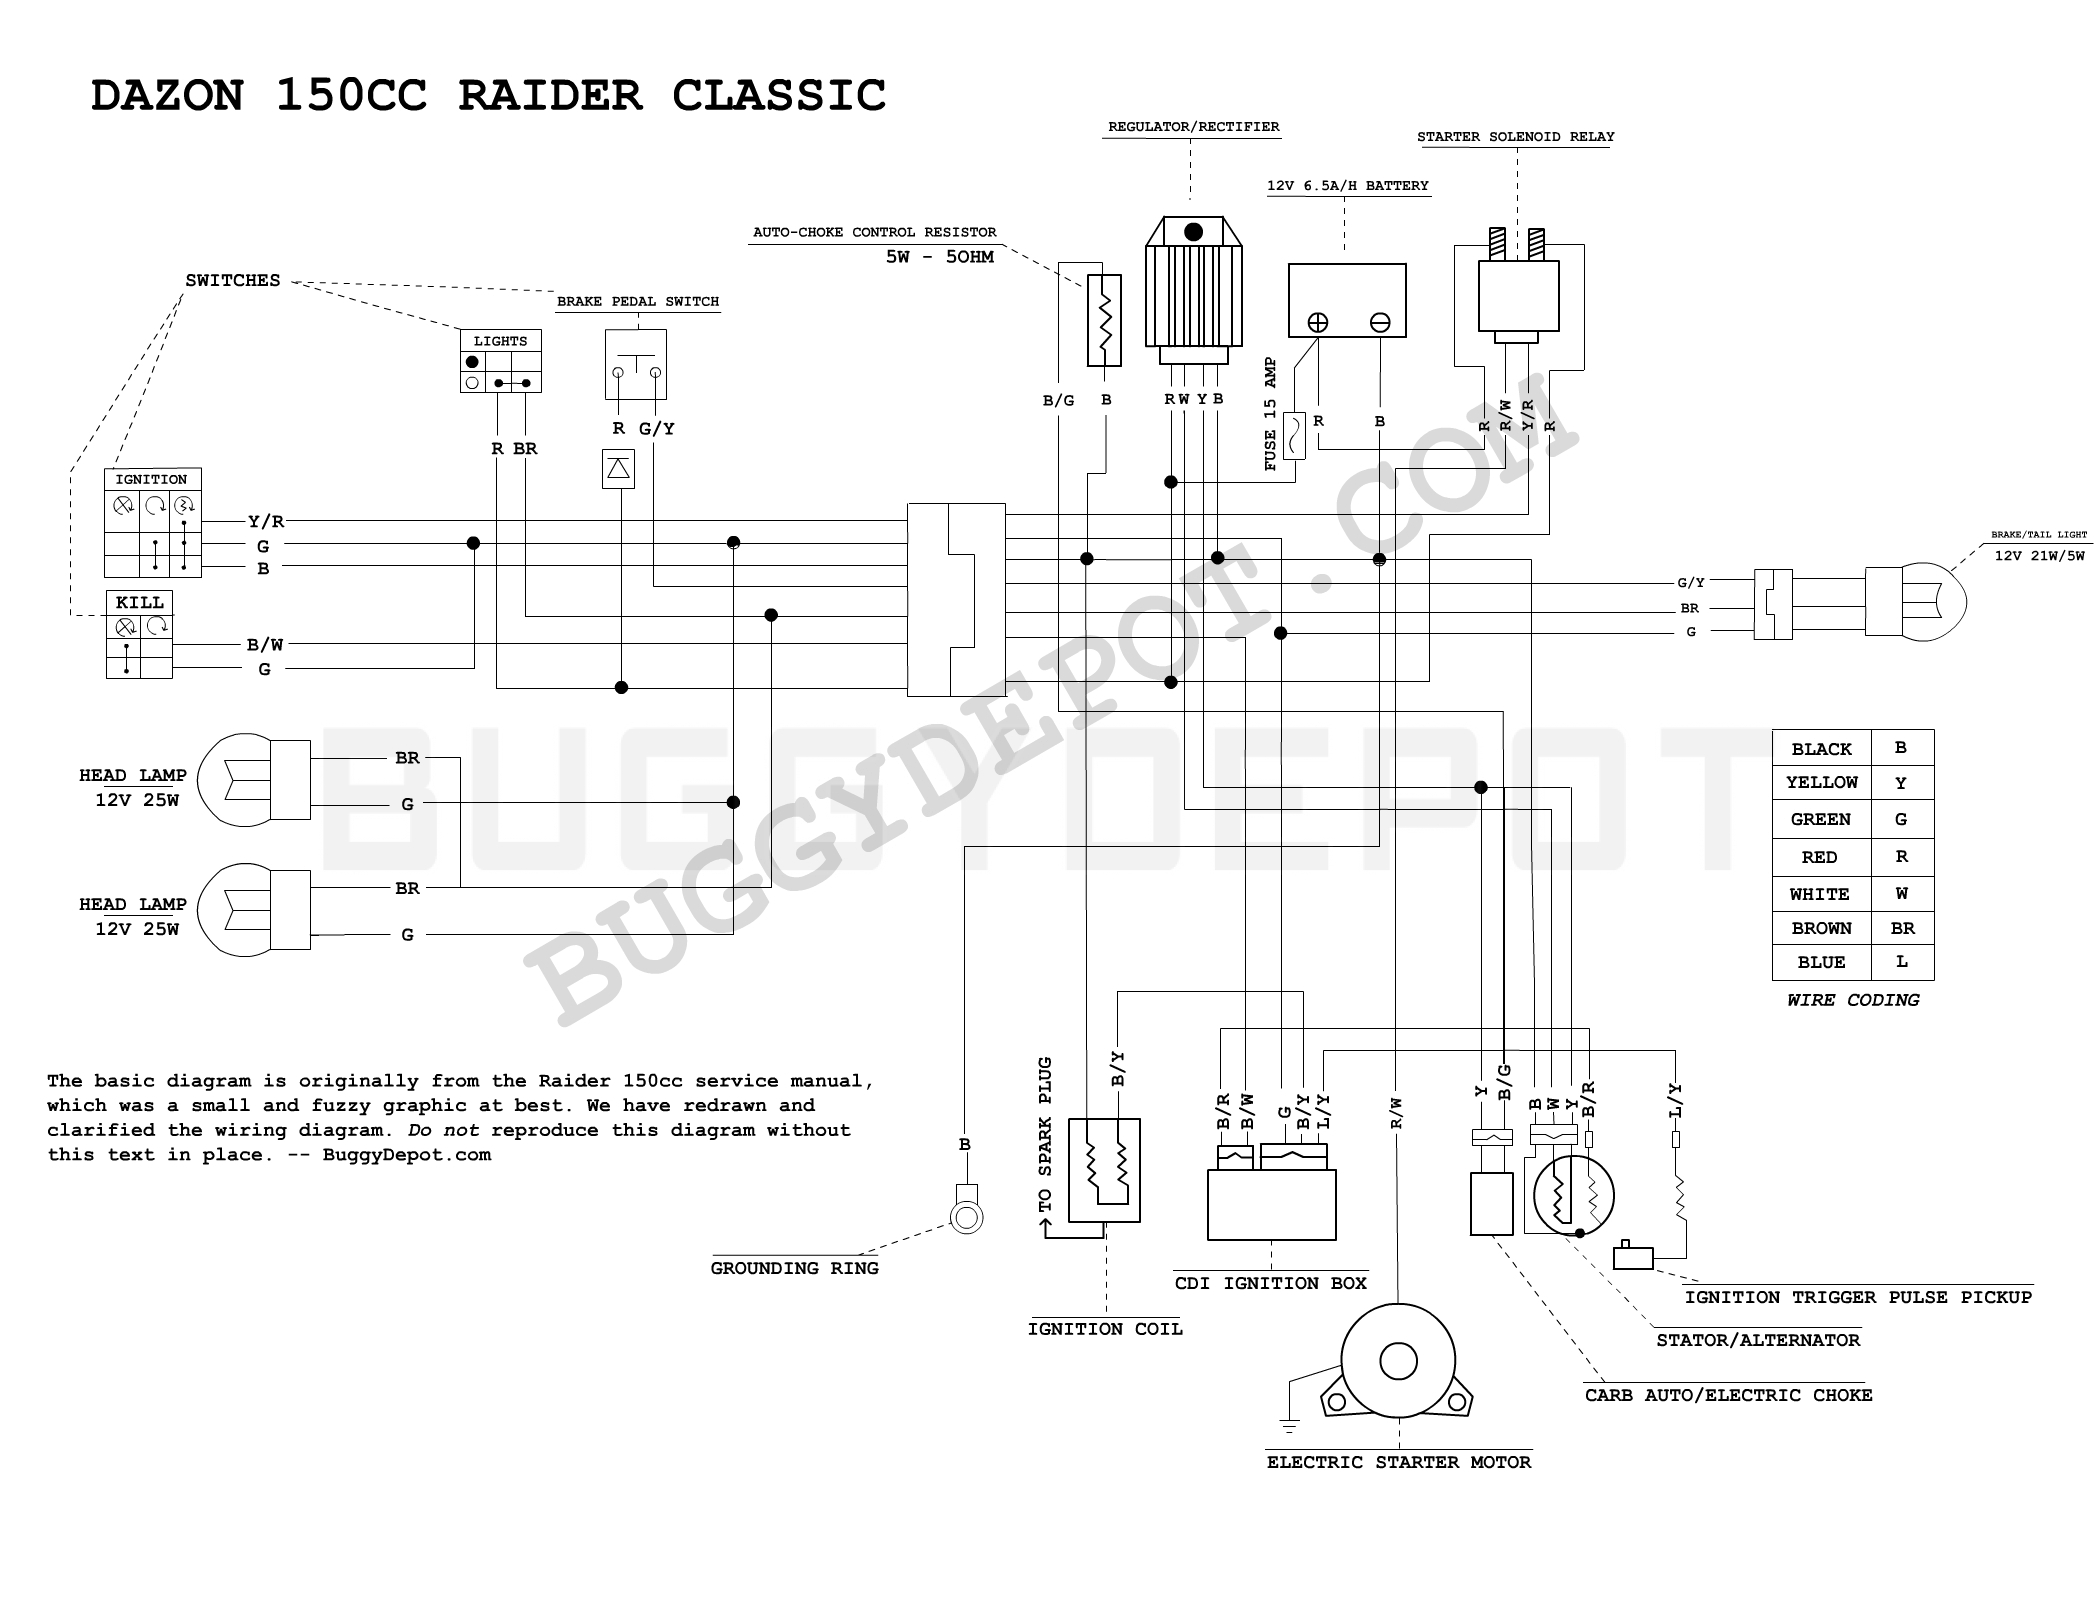 Dazon Raider Classic - Wiring Diagram - Buggy Depot Technical Center | Gy6 Buggy Wiring Diagram |  | Buggy Depot